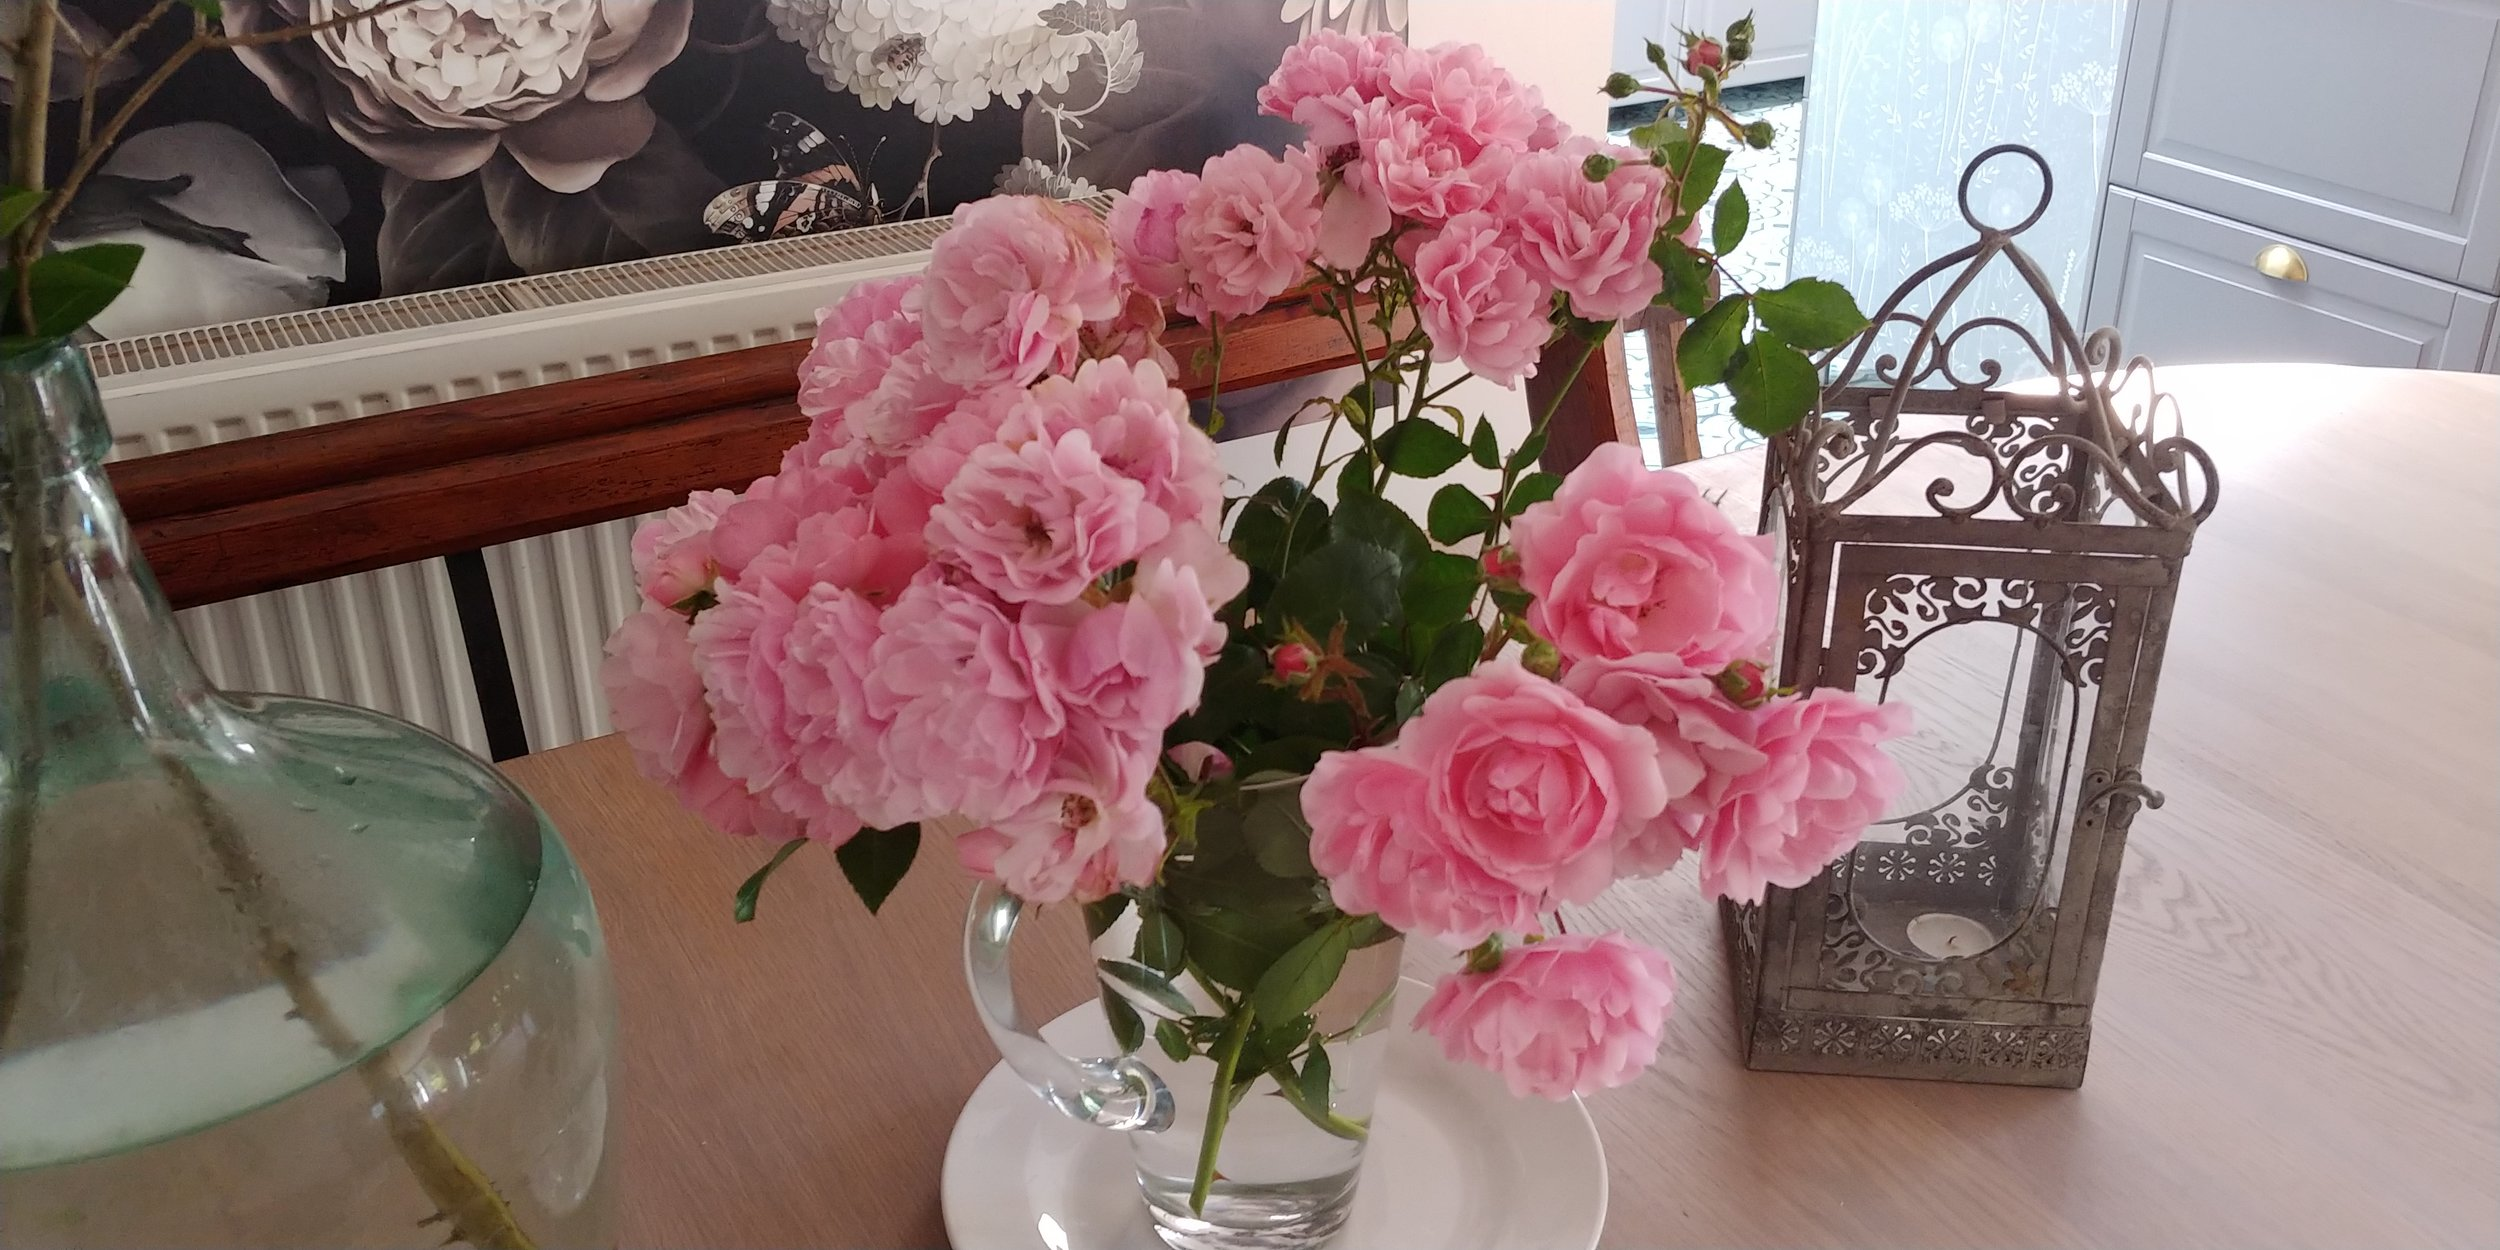 These gorgeous roses are from our neighbour's front garden.